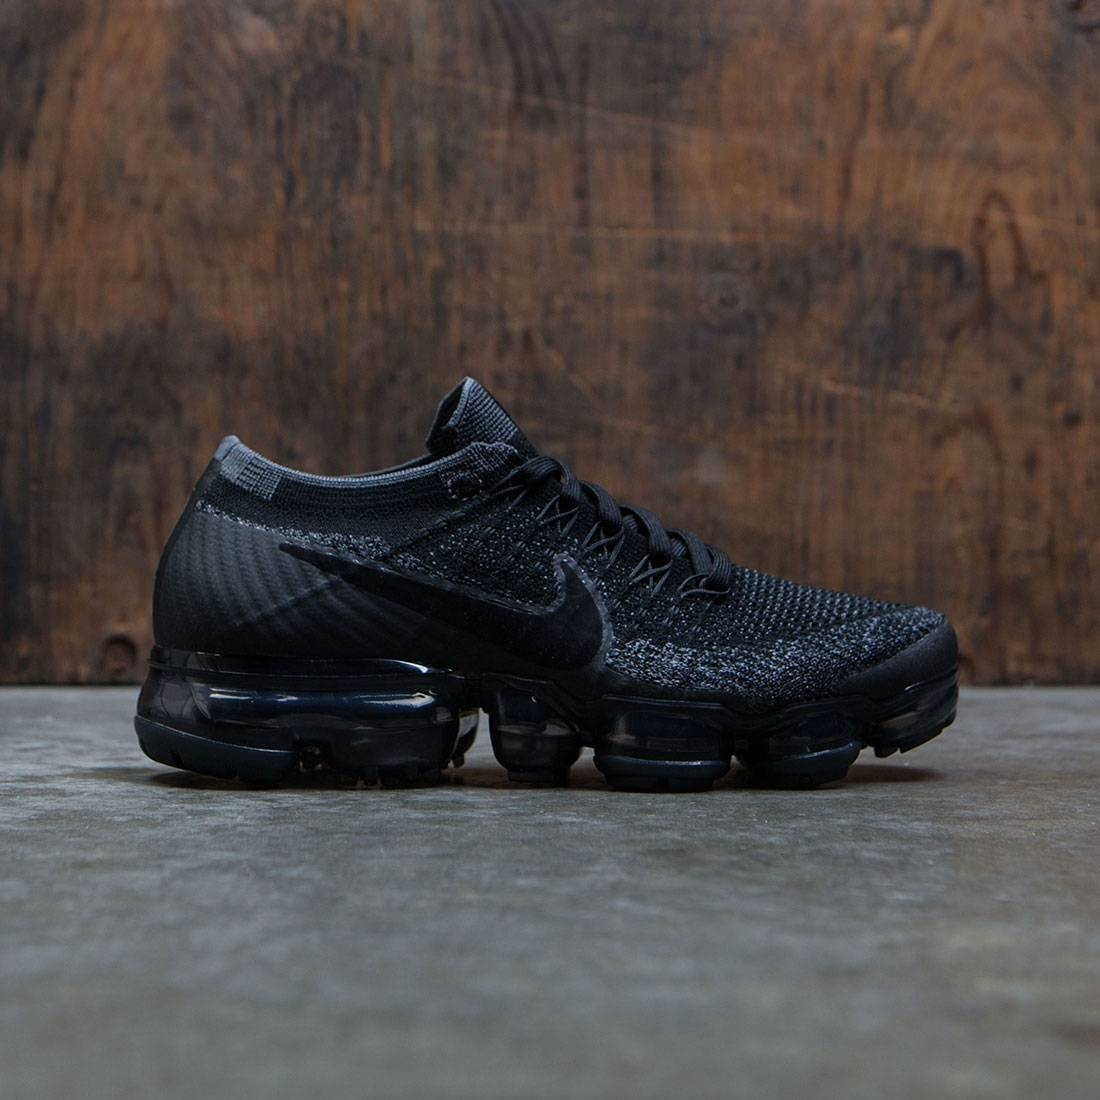 sale retailer c7631 ee988 Nike Women Air Vapormax Flyknit Running (black / anthracite-dark grey)